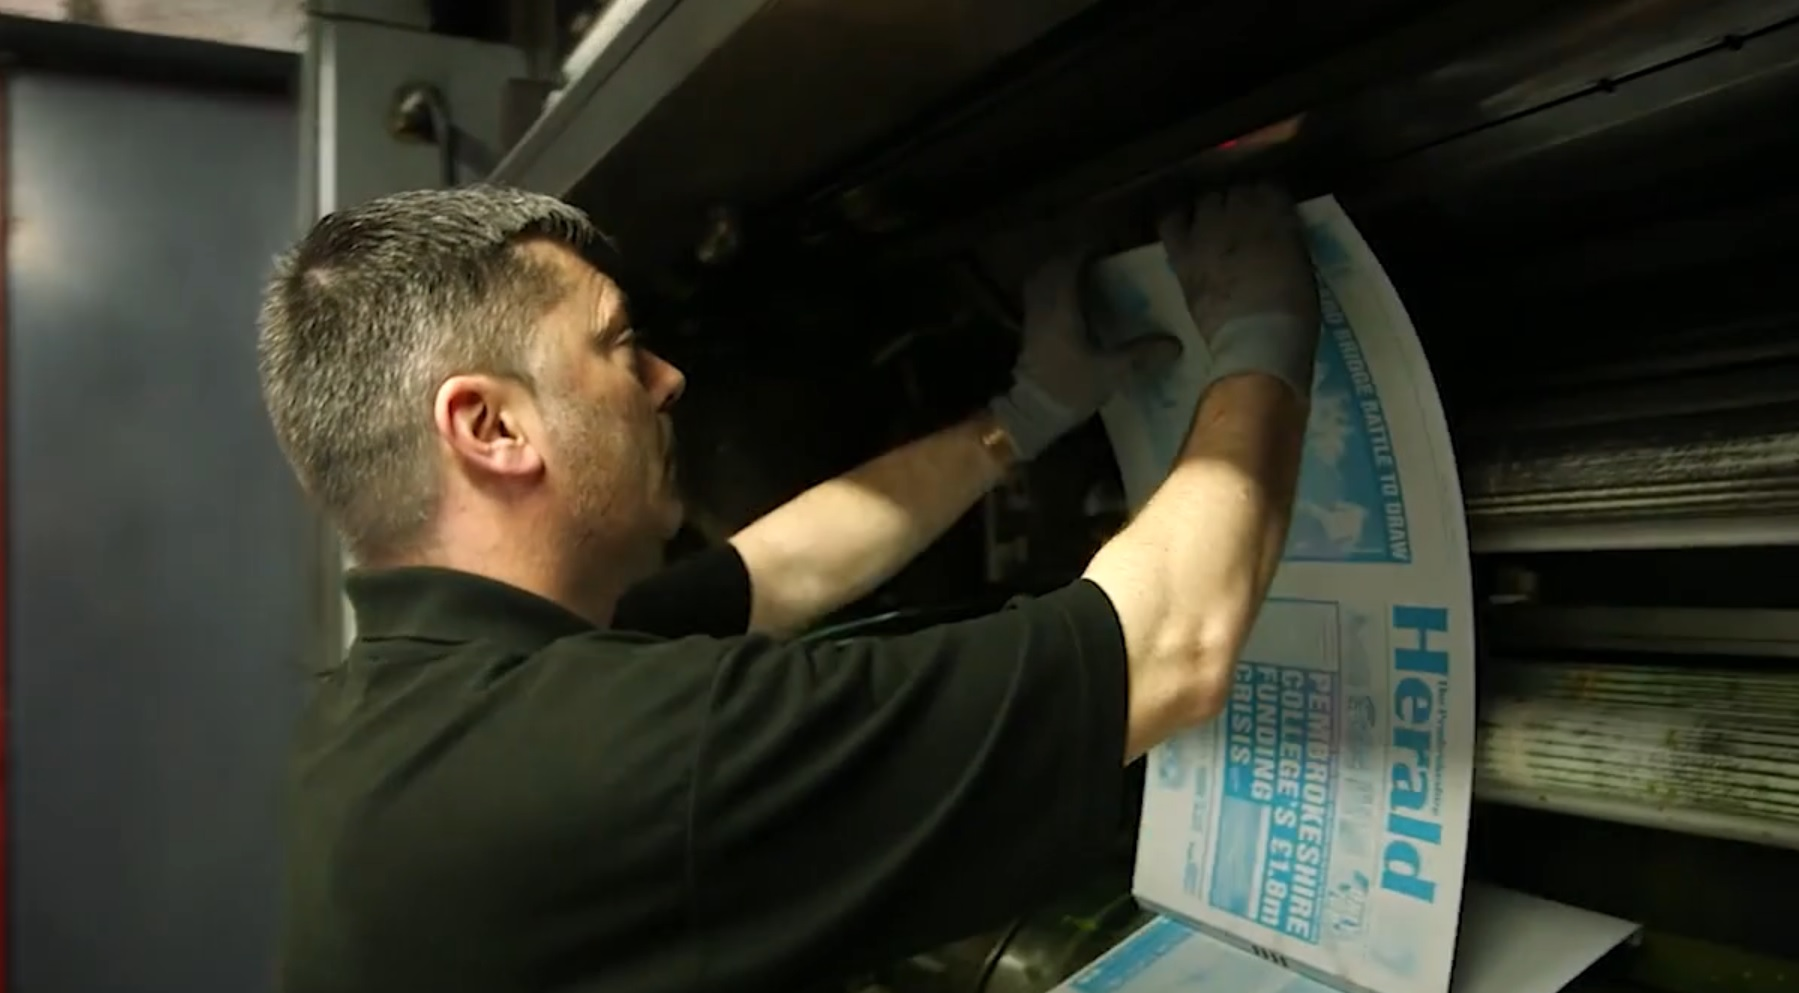 Future of The Pembrokeshire Herald newspaper secured - The Carmarthenshire Herald